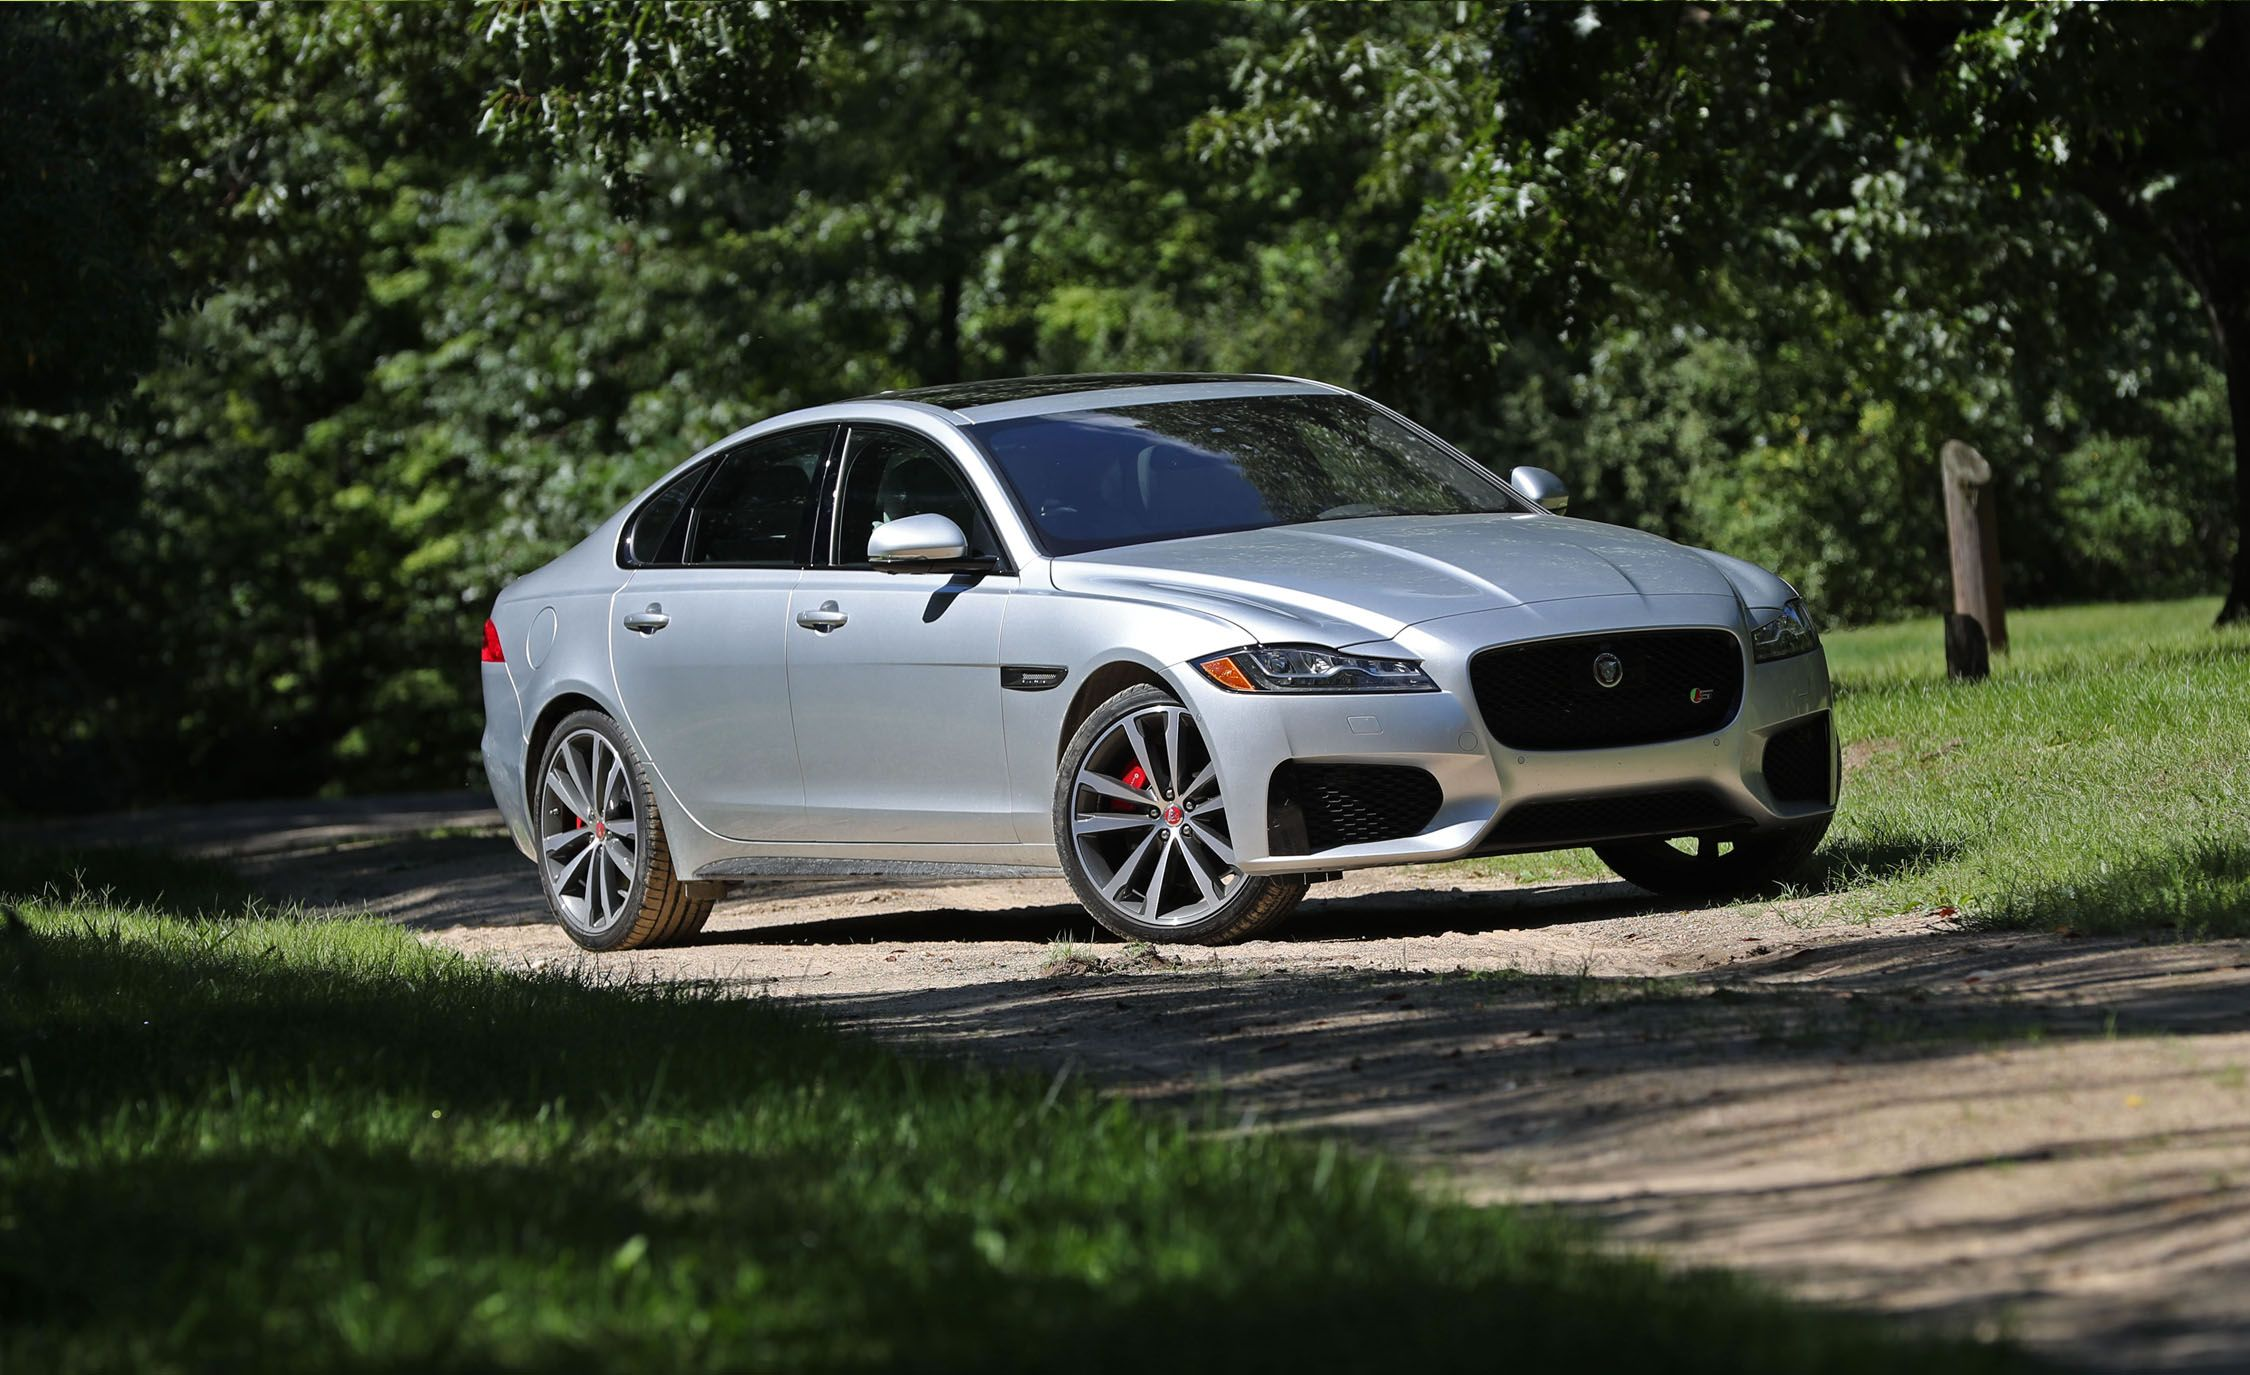 2017 Jaguar Xf 20d Awd Test Review Car And Driver